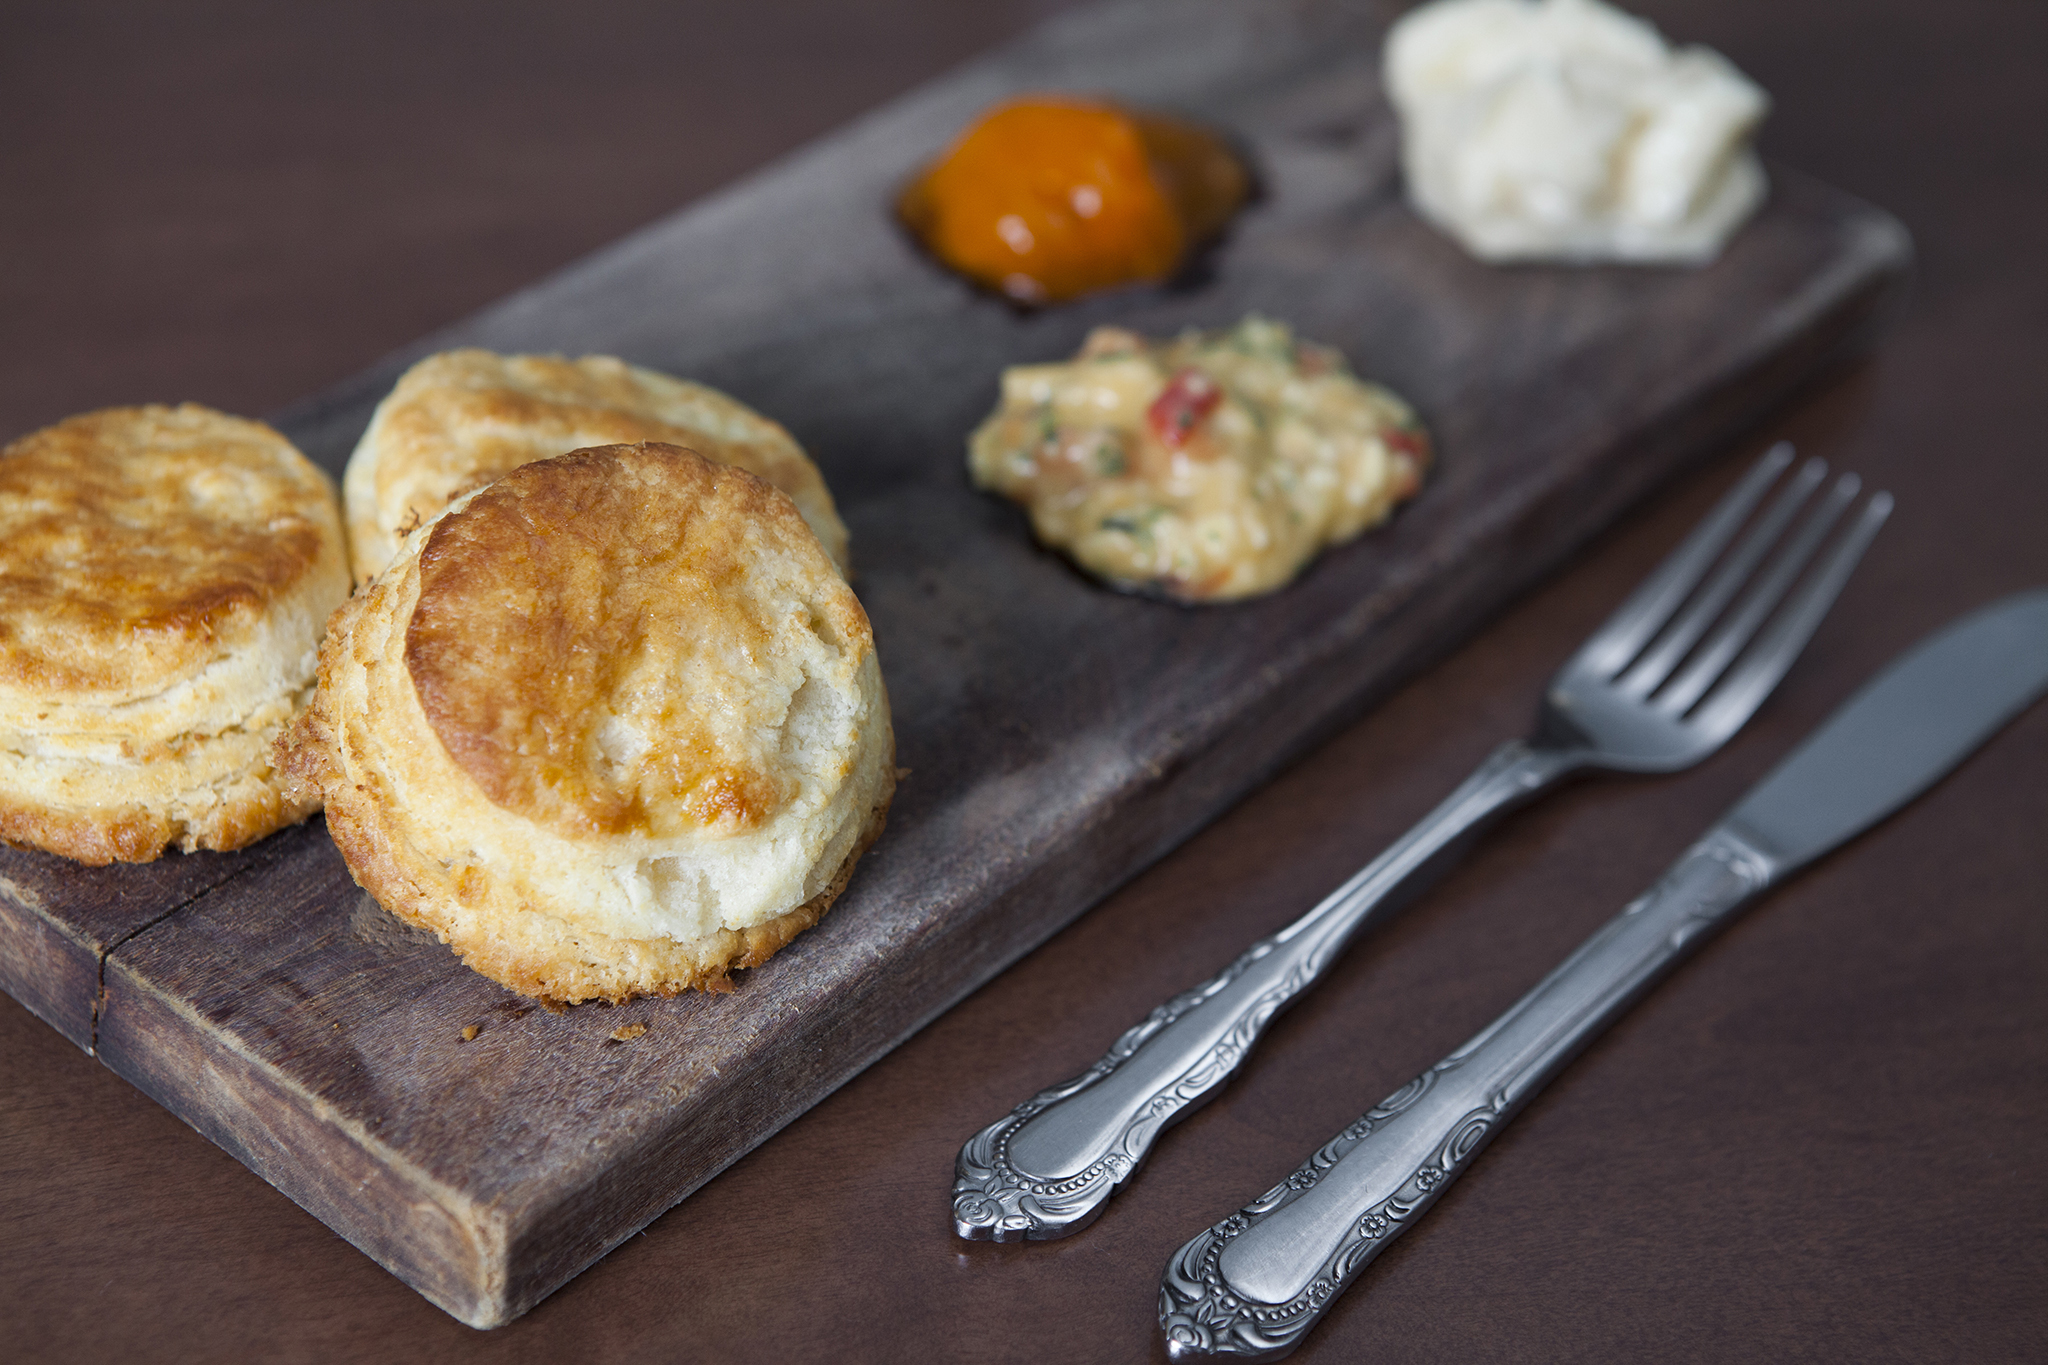 Biscuits with honey butter, persimmon preserves and pimento cheese at The Hart and the Hunter